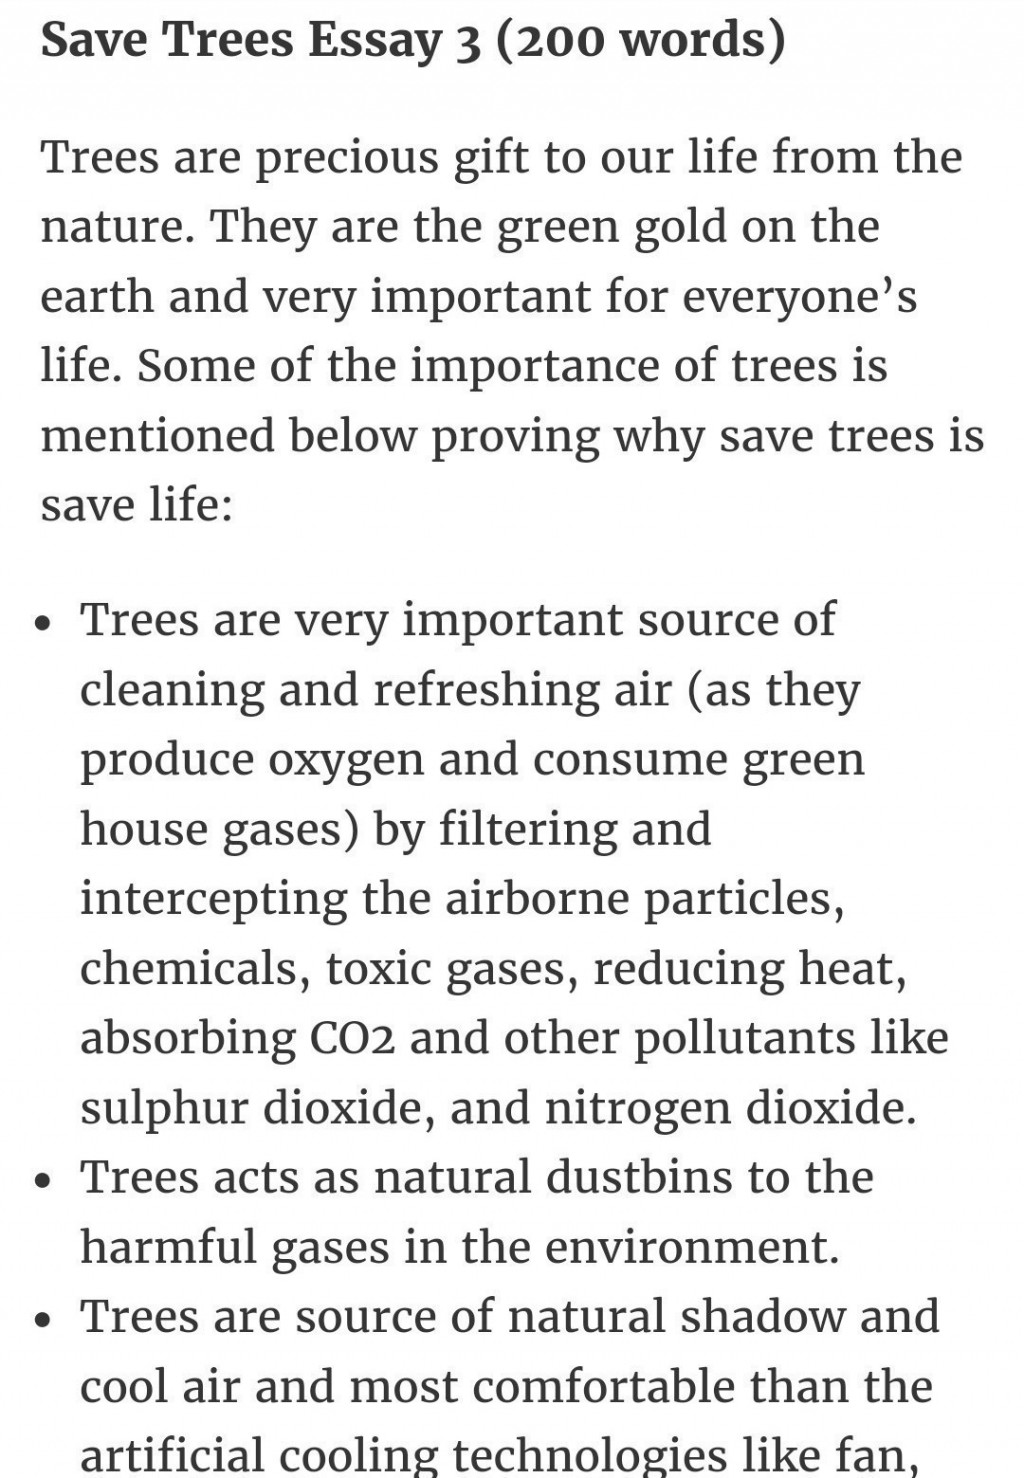 005 How Can We Save Trees Essay Example Marvelous To In Hindi Telugu Large